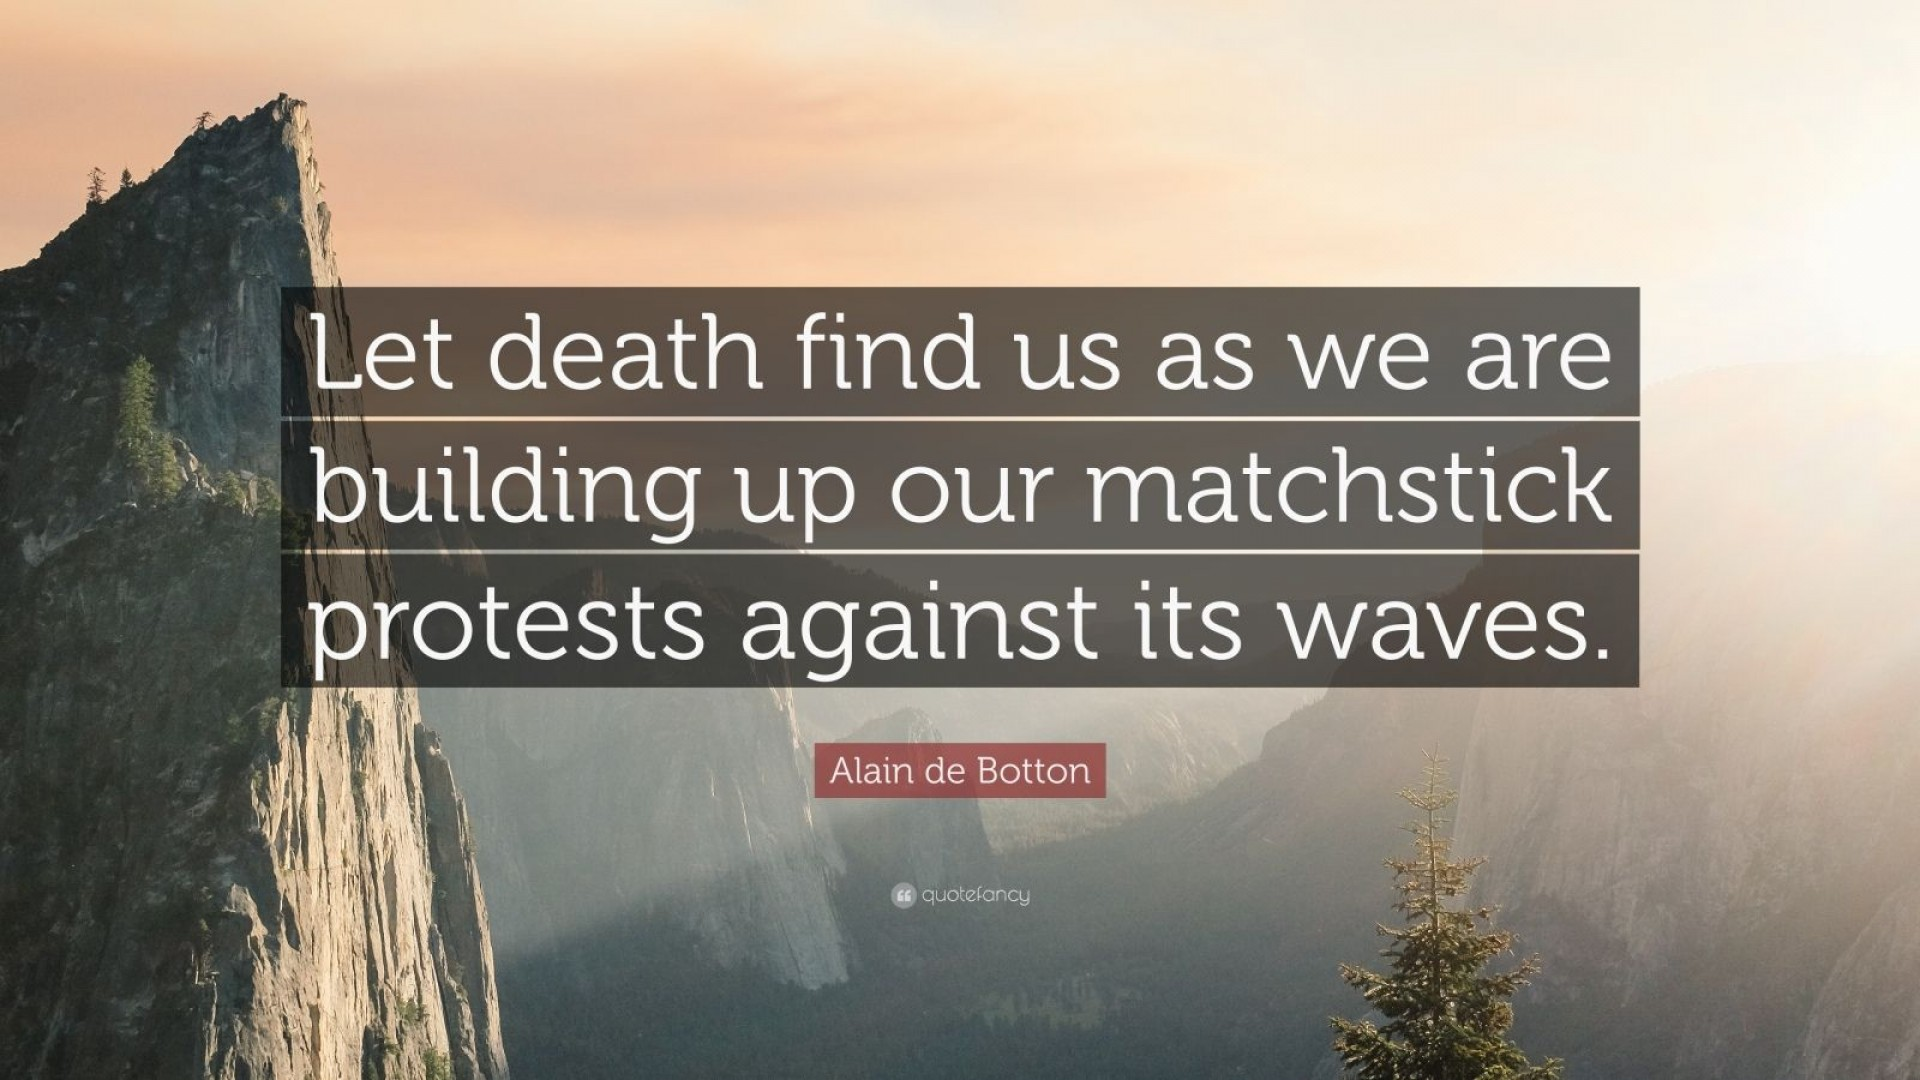 015 Alain Botton Quote Let Death Find Us As We Are Building Up Our Essay Example Essays In Singular De Love Pdf Audiobook Epub 1920